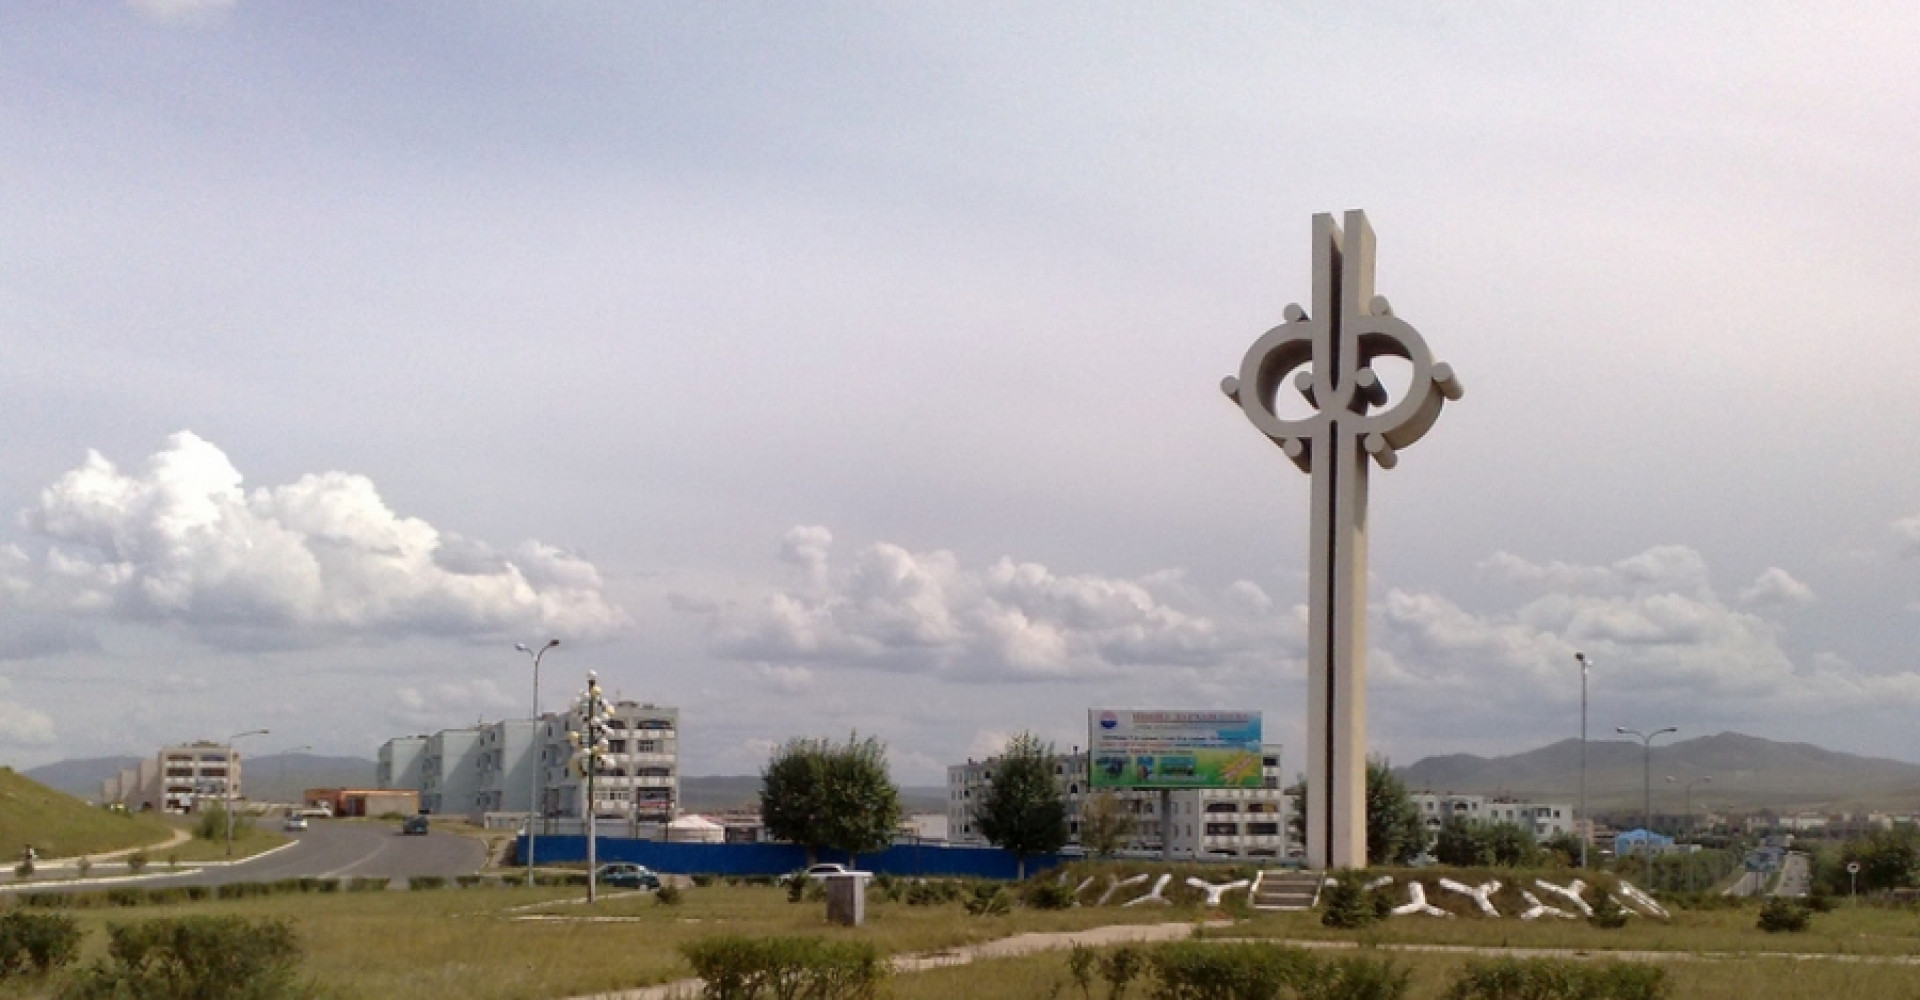 Museum of Darkhan-Uul province